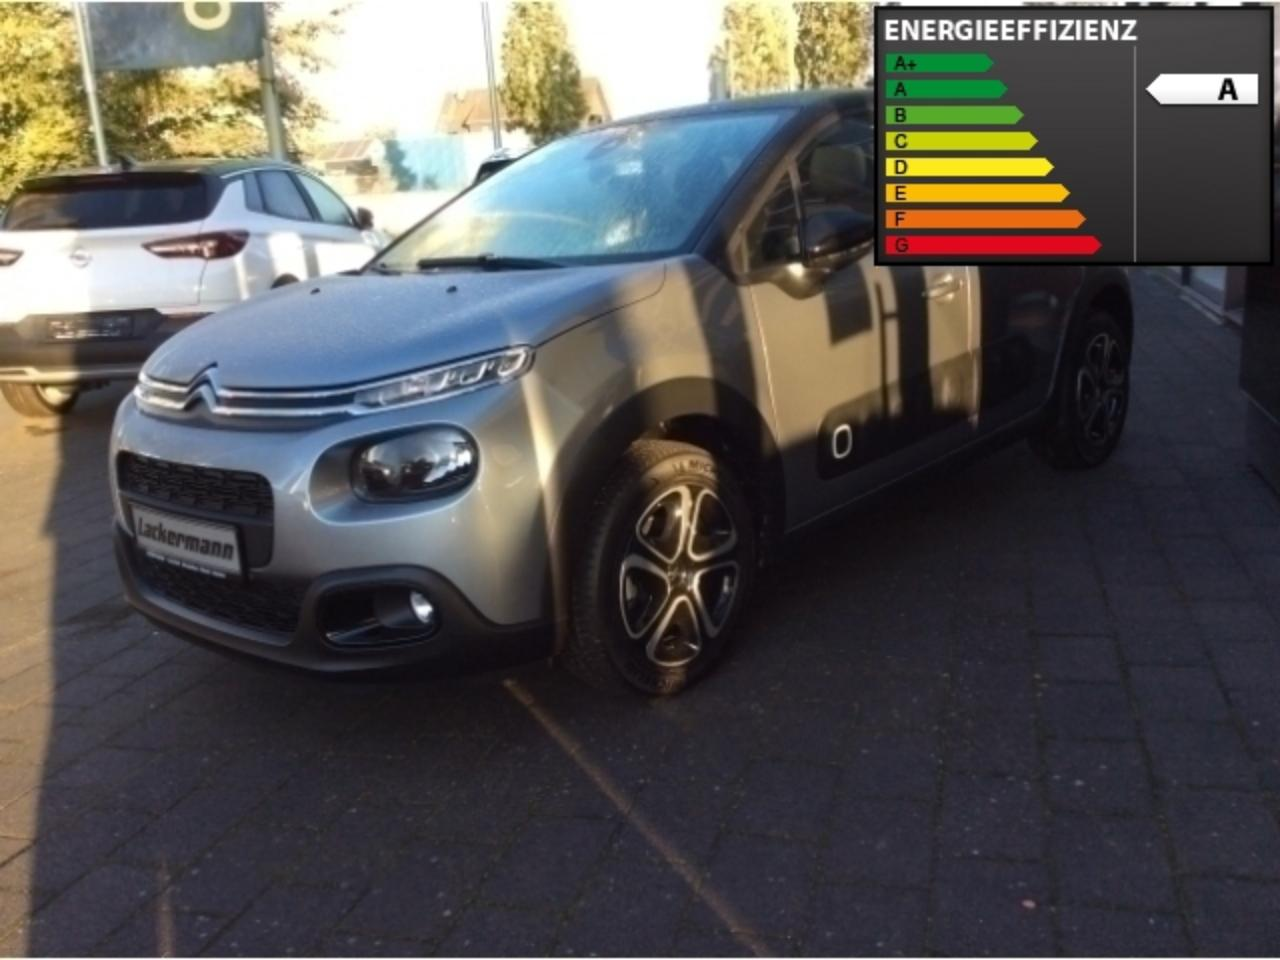 Citroën C3 Shine AirBump, Navi, PDC, Klima, Touchscreen